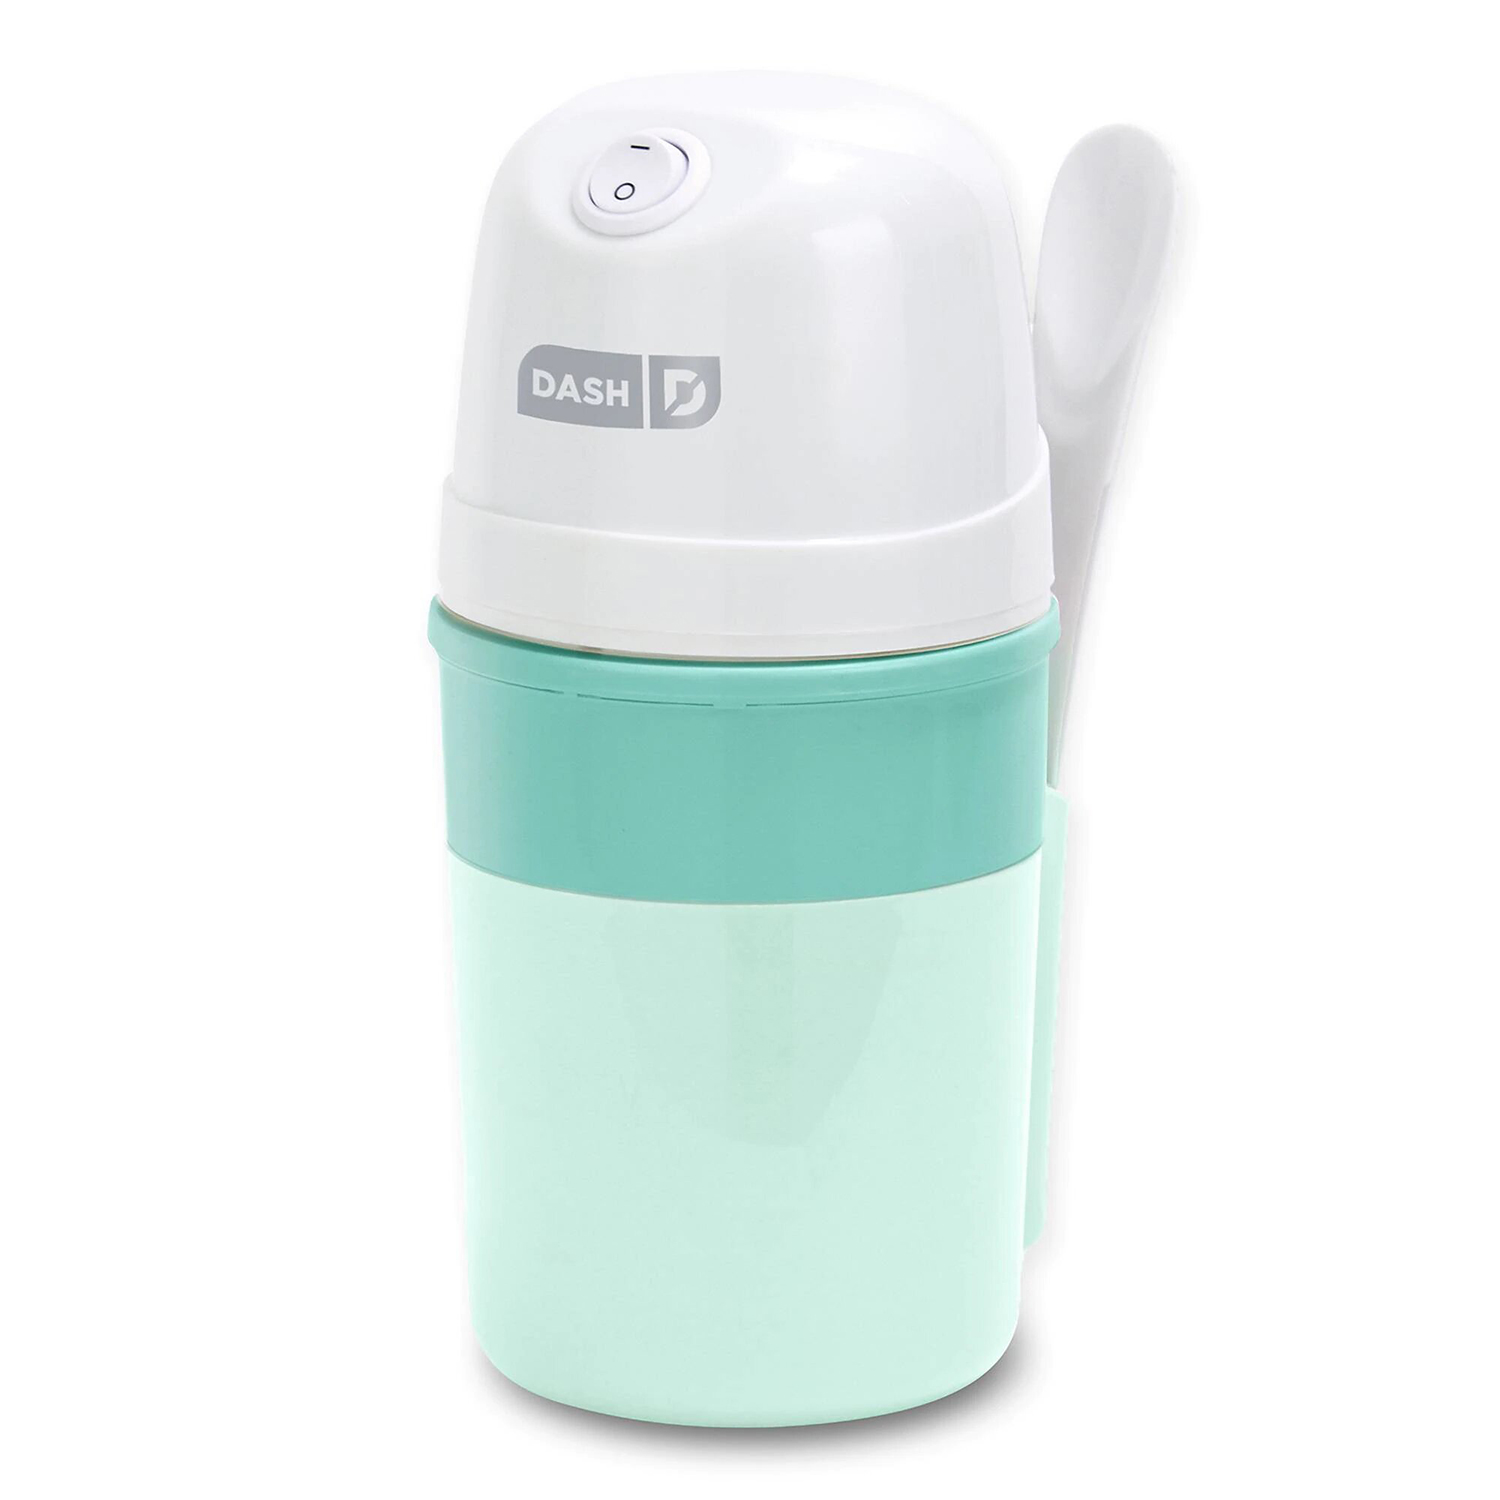 DASH My Pint Ice Cream Maker in Aqua